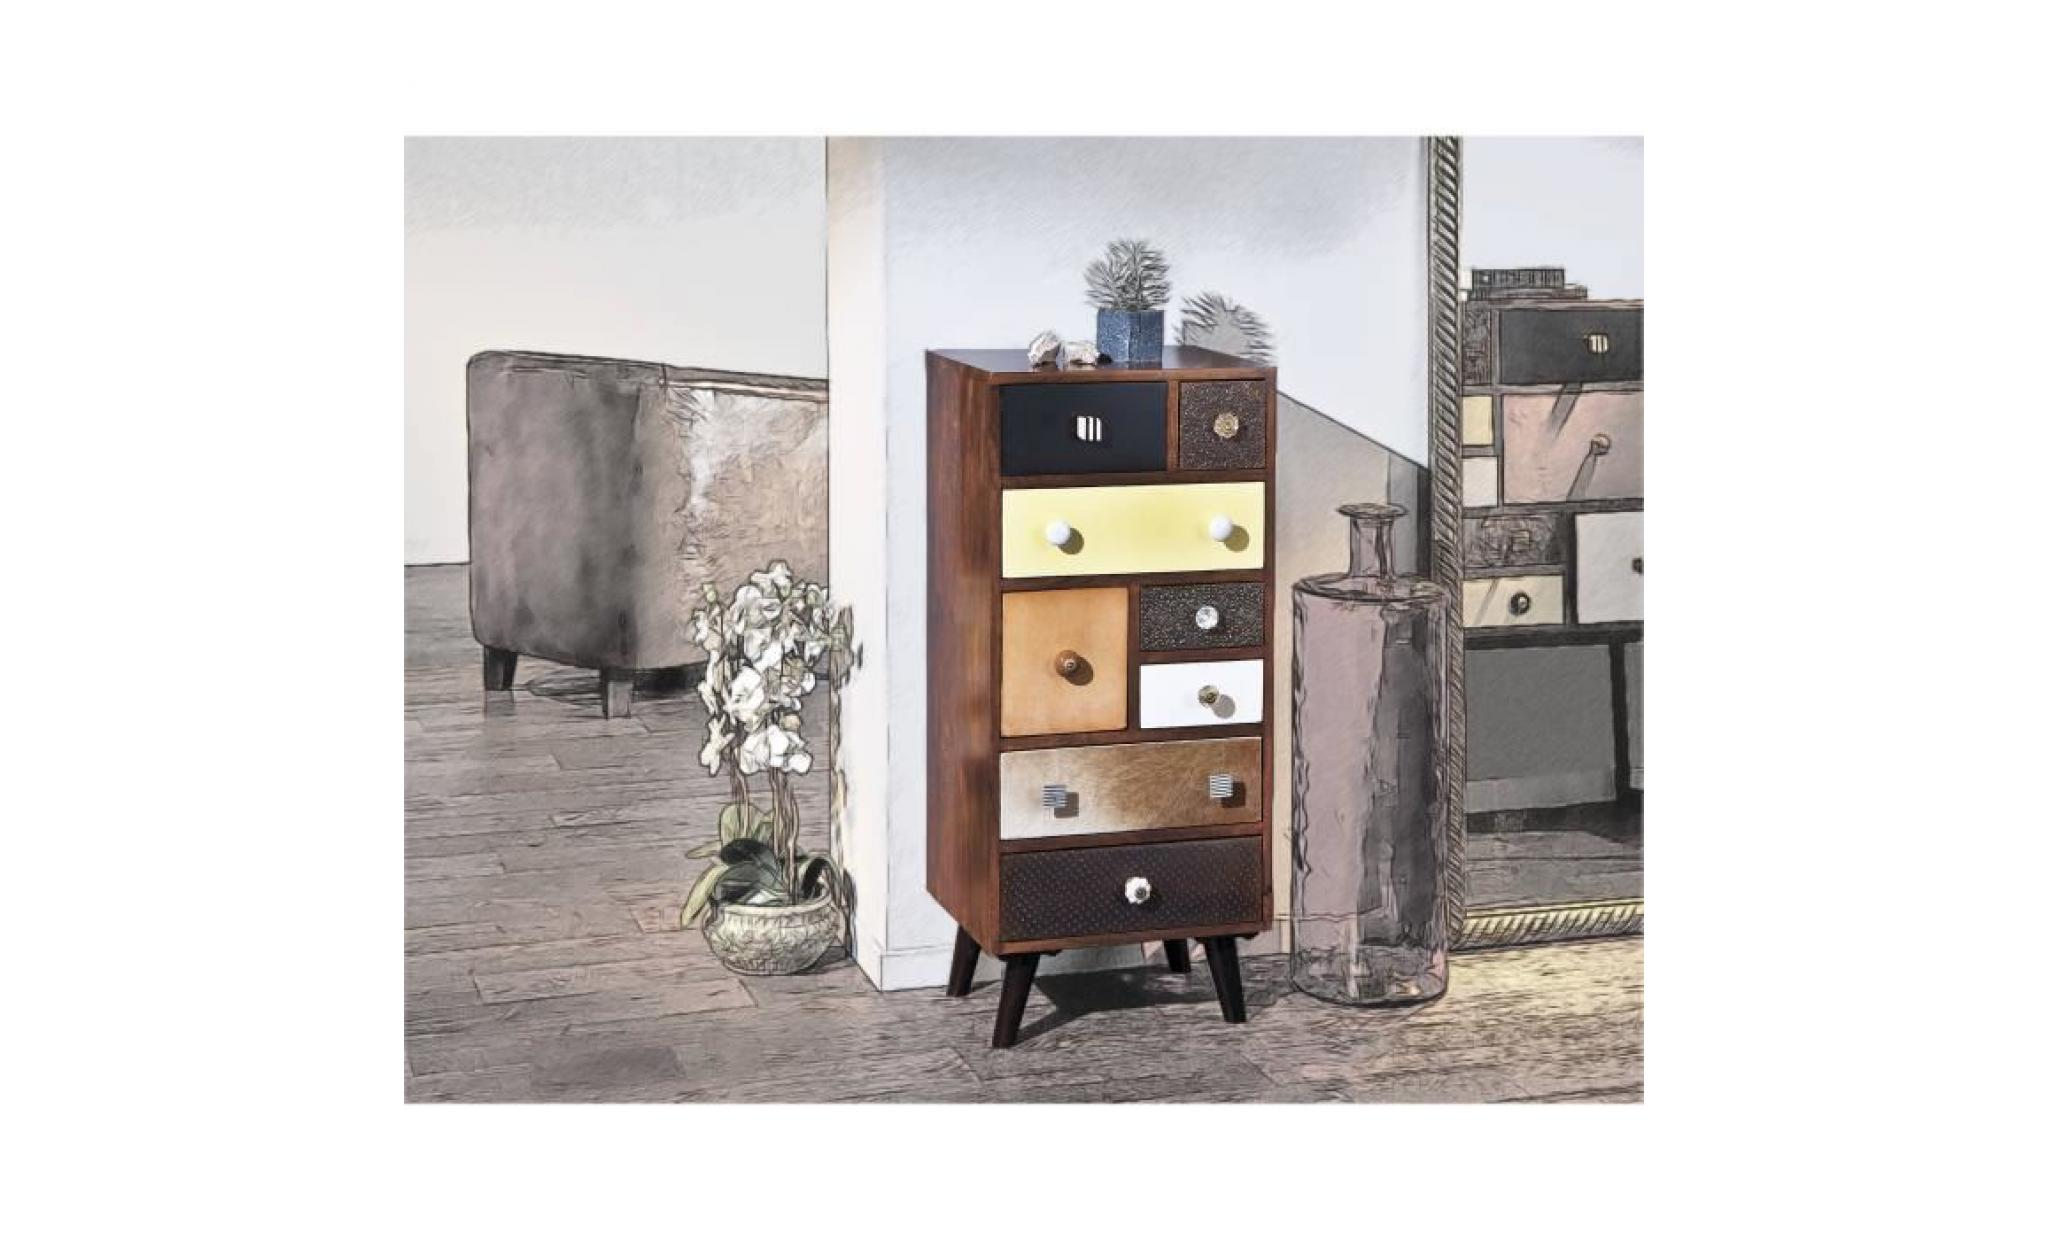 commode vintage commode bois massif commode 8 tiroirs commode chambre adulte commode basse commode apothicaire rangement achat vente commode pas cher couleur et design fr